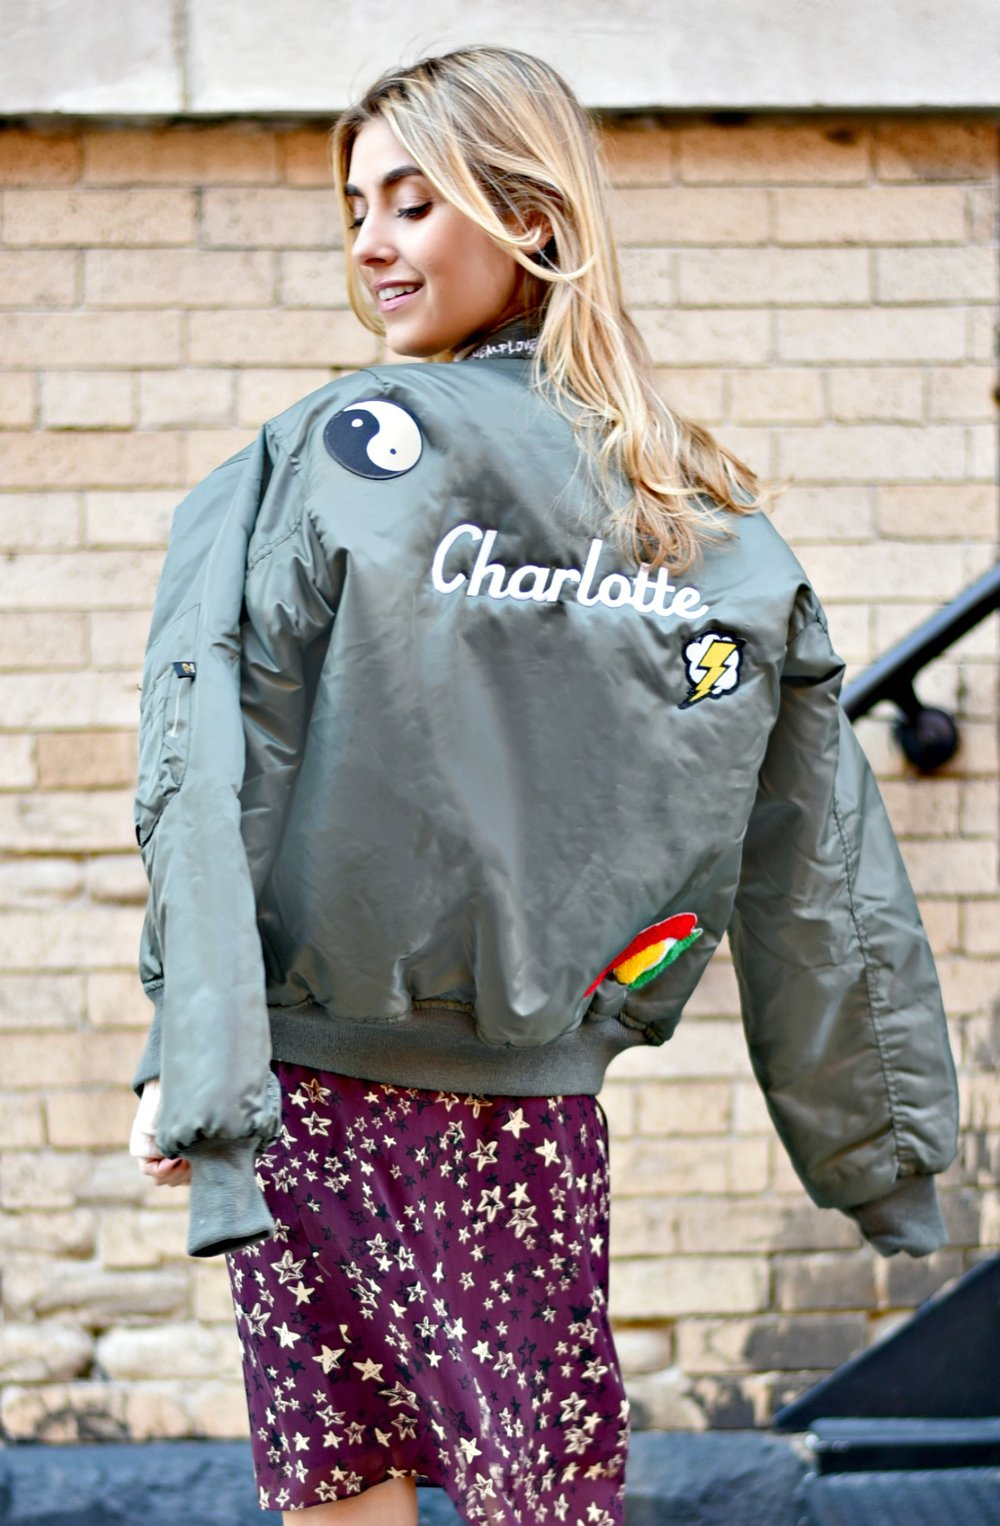 CHARLOTTE BICKLEY YIN 2MY YANG SISTER FASHION BLOGGERS NYC UNEMPLOYED DENIM PERSONALIZED BOMBER JACKET POST 5.jpg